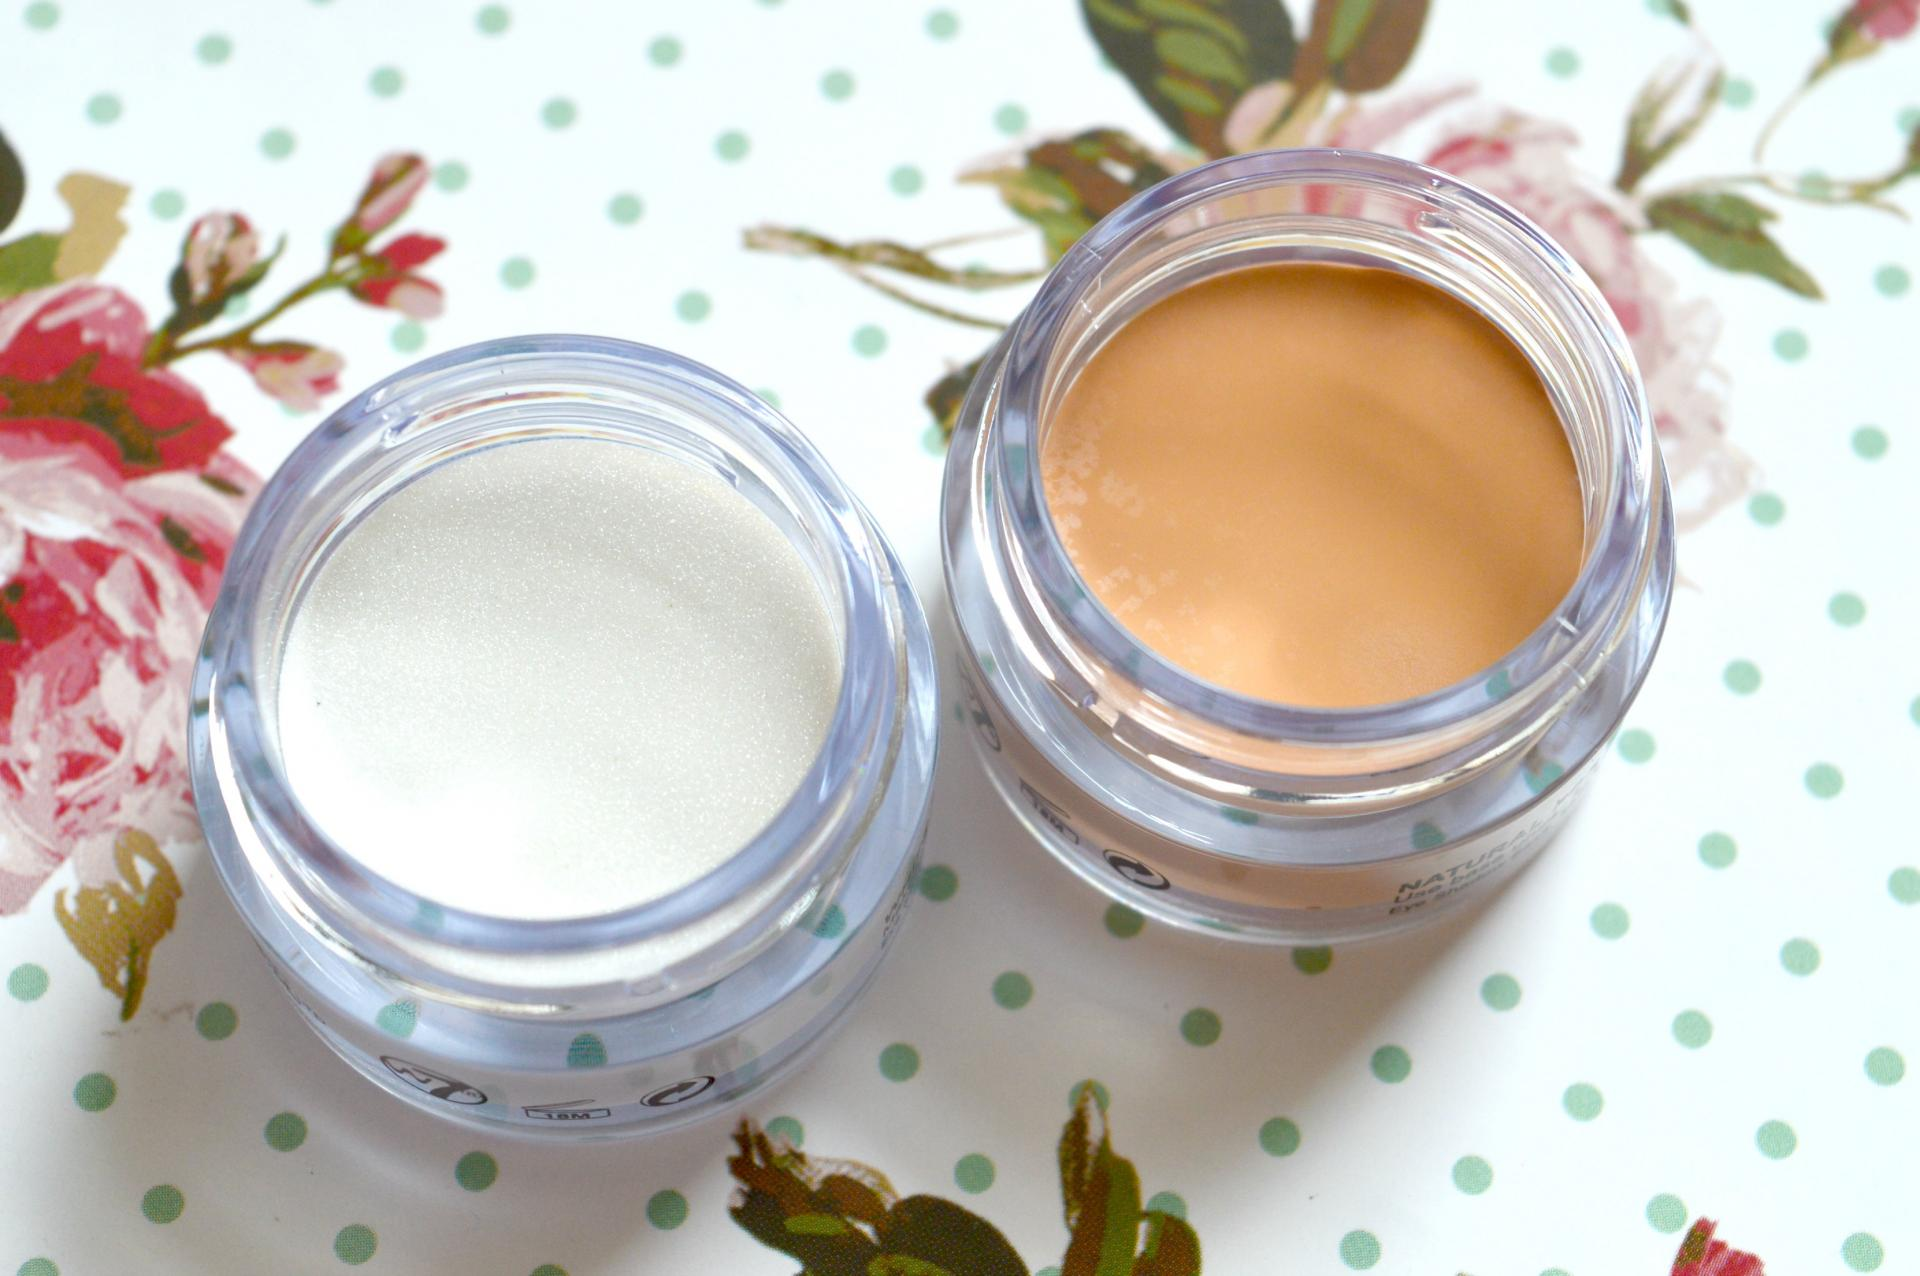 W7 Get Set Eye Shadow Bases in White Pearl and Natural